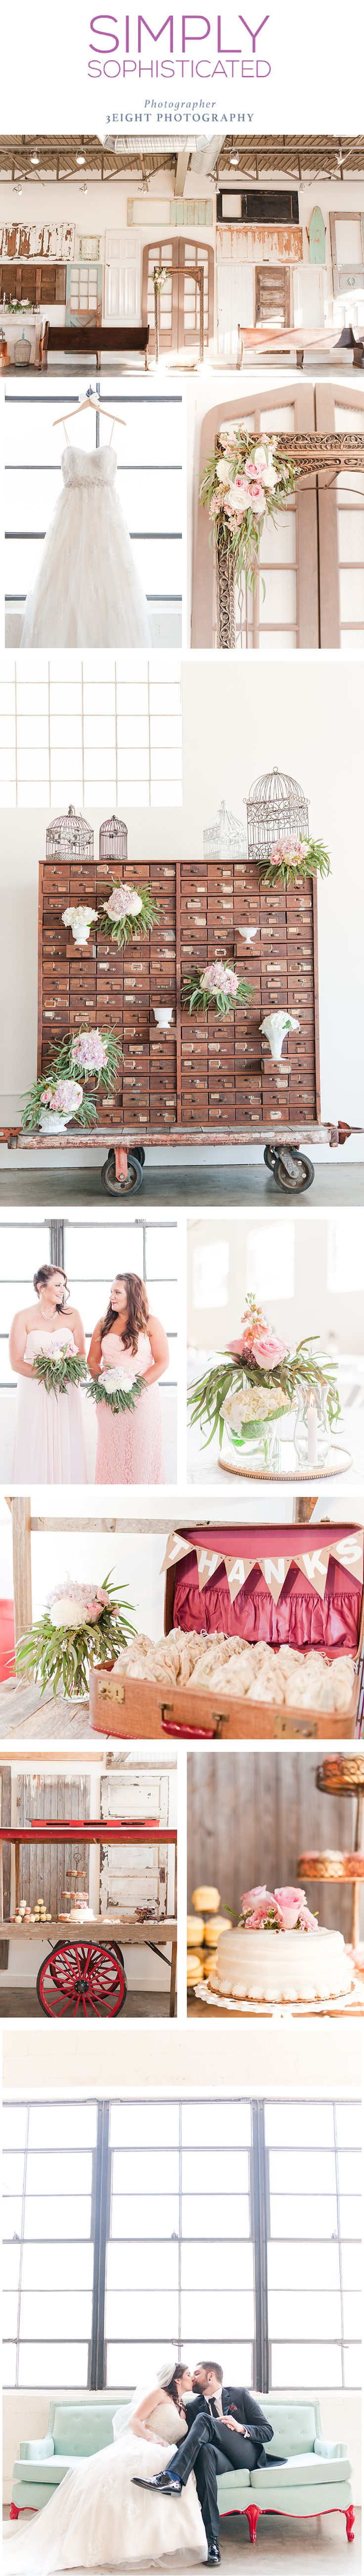 Simply Sophisticated wedding by 3Eight Photography. Read more about is at thepinkbride.com | The Pink Bride® Photo credit: 3Eight Photograpy